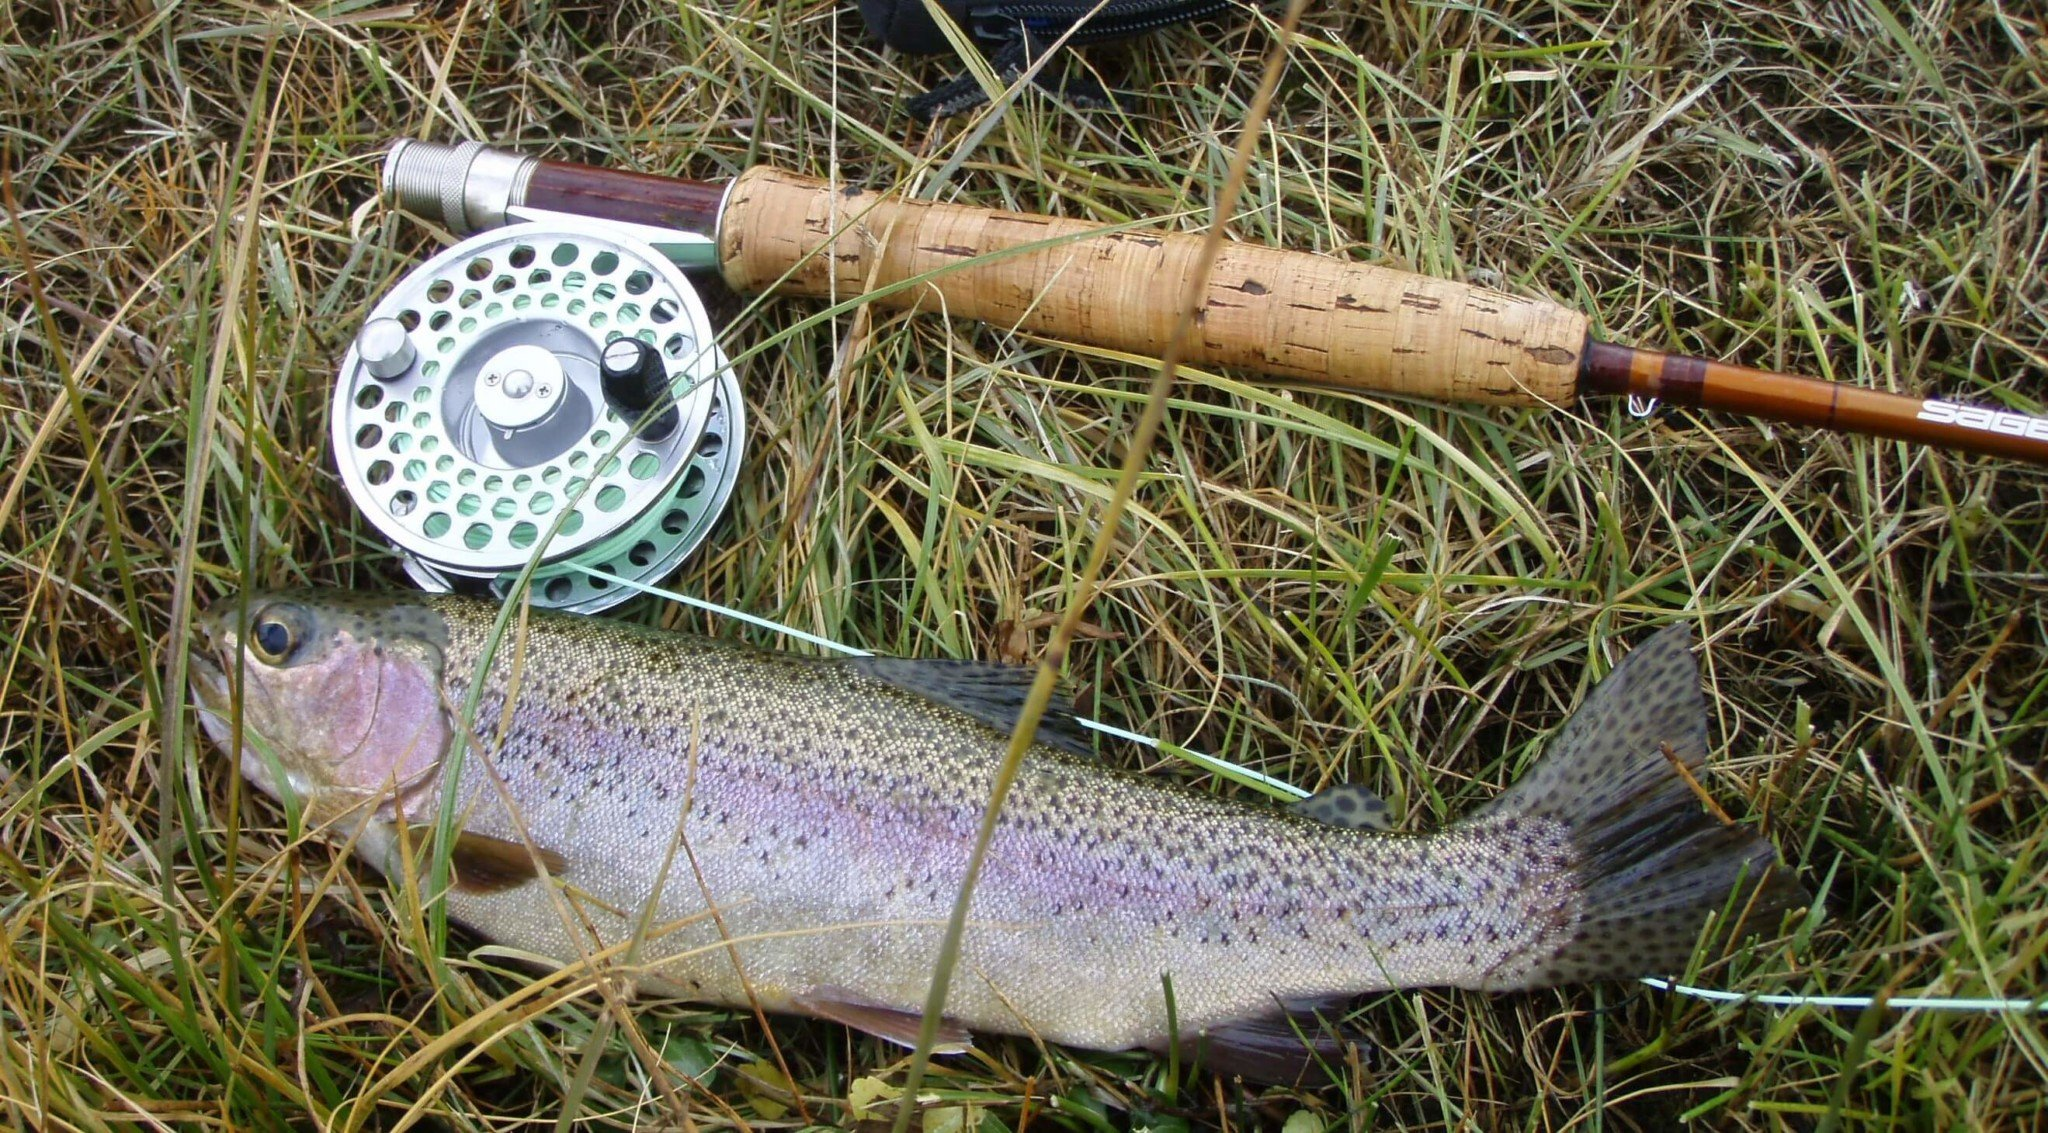 rainbow-trout-609551